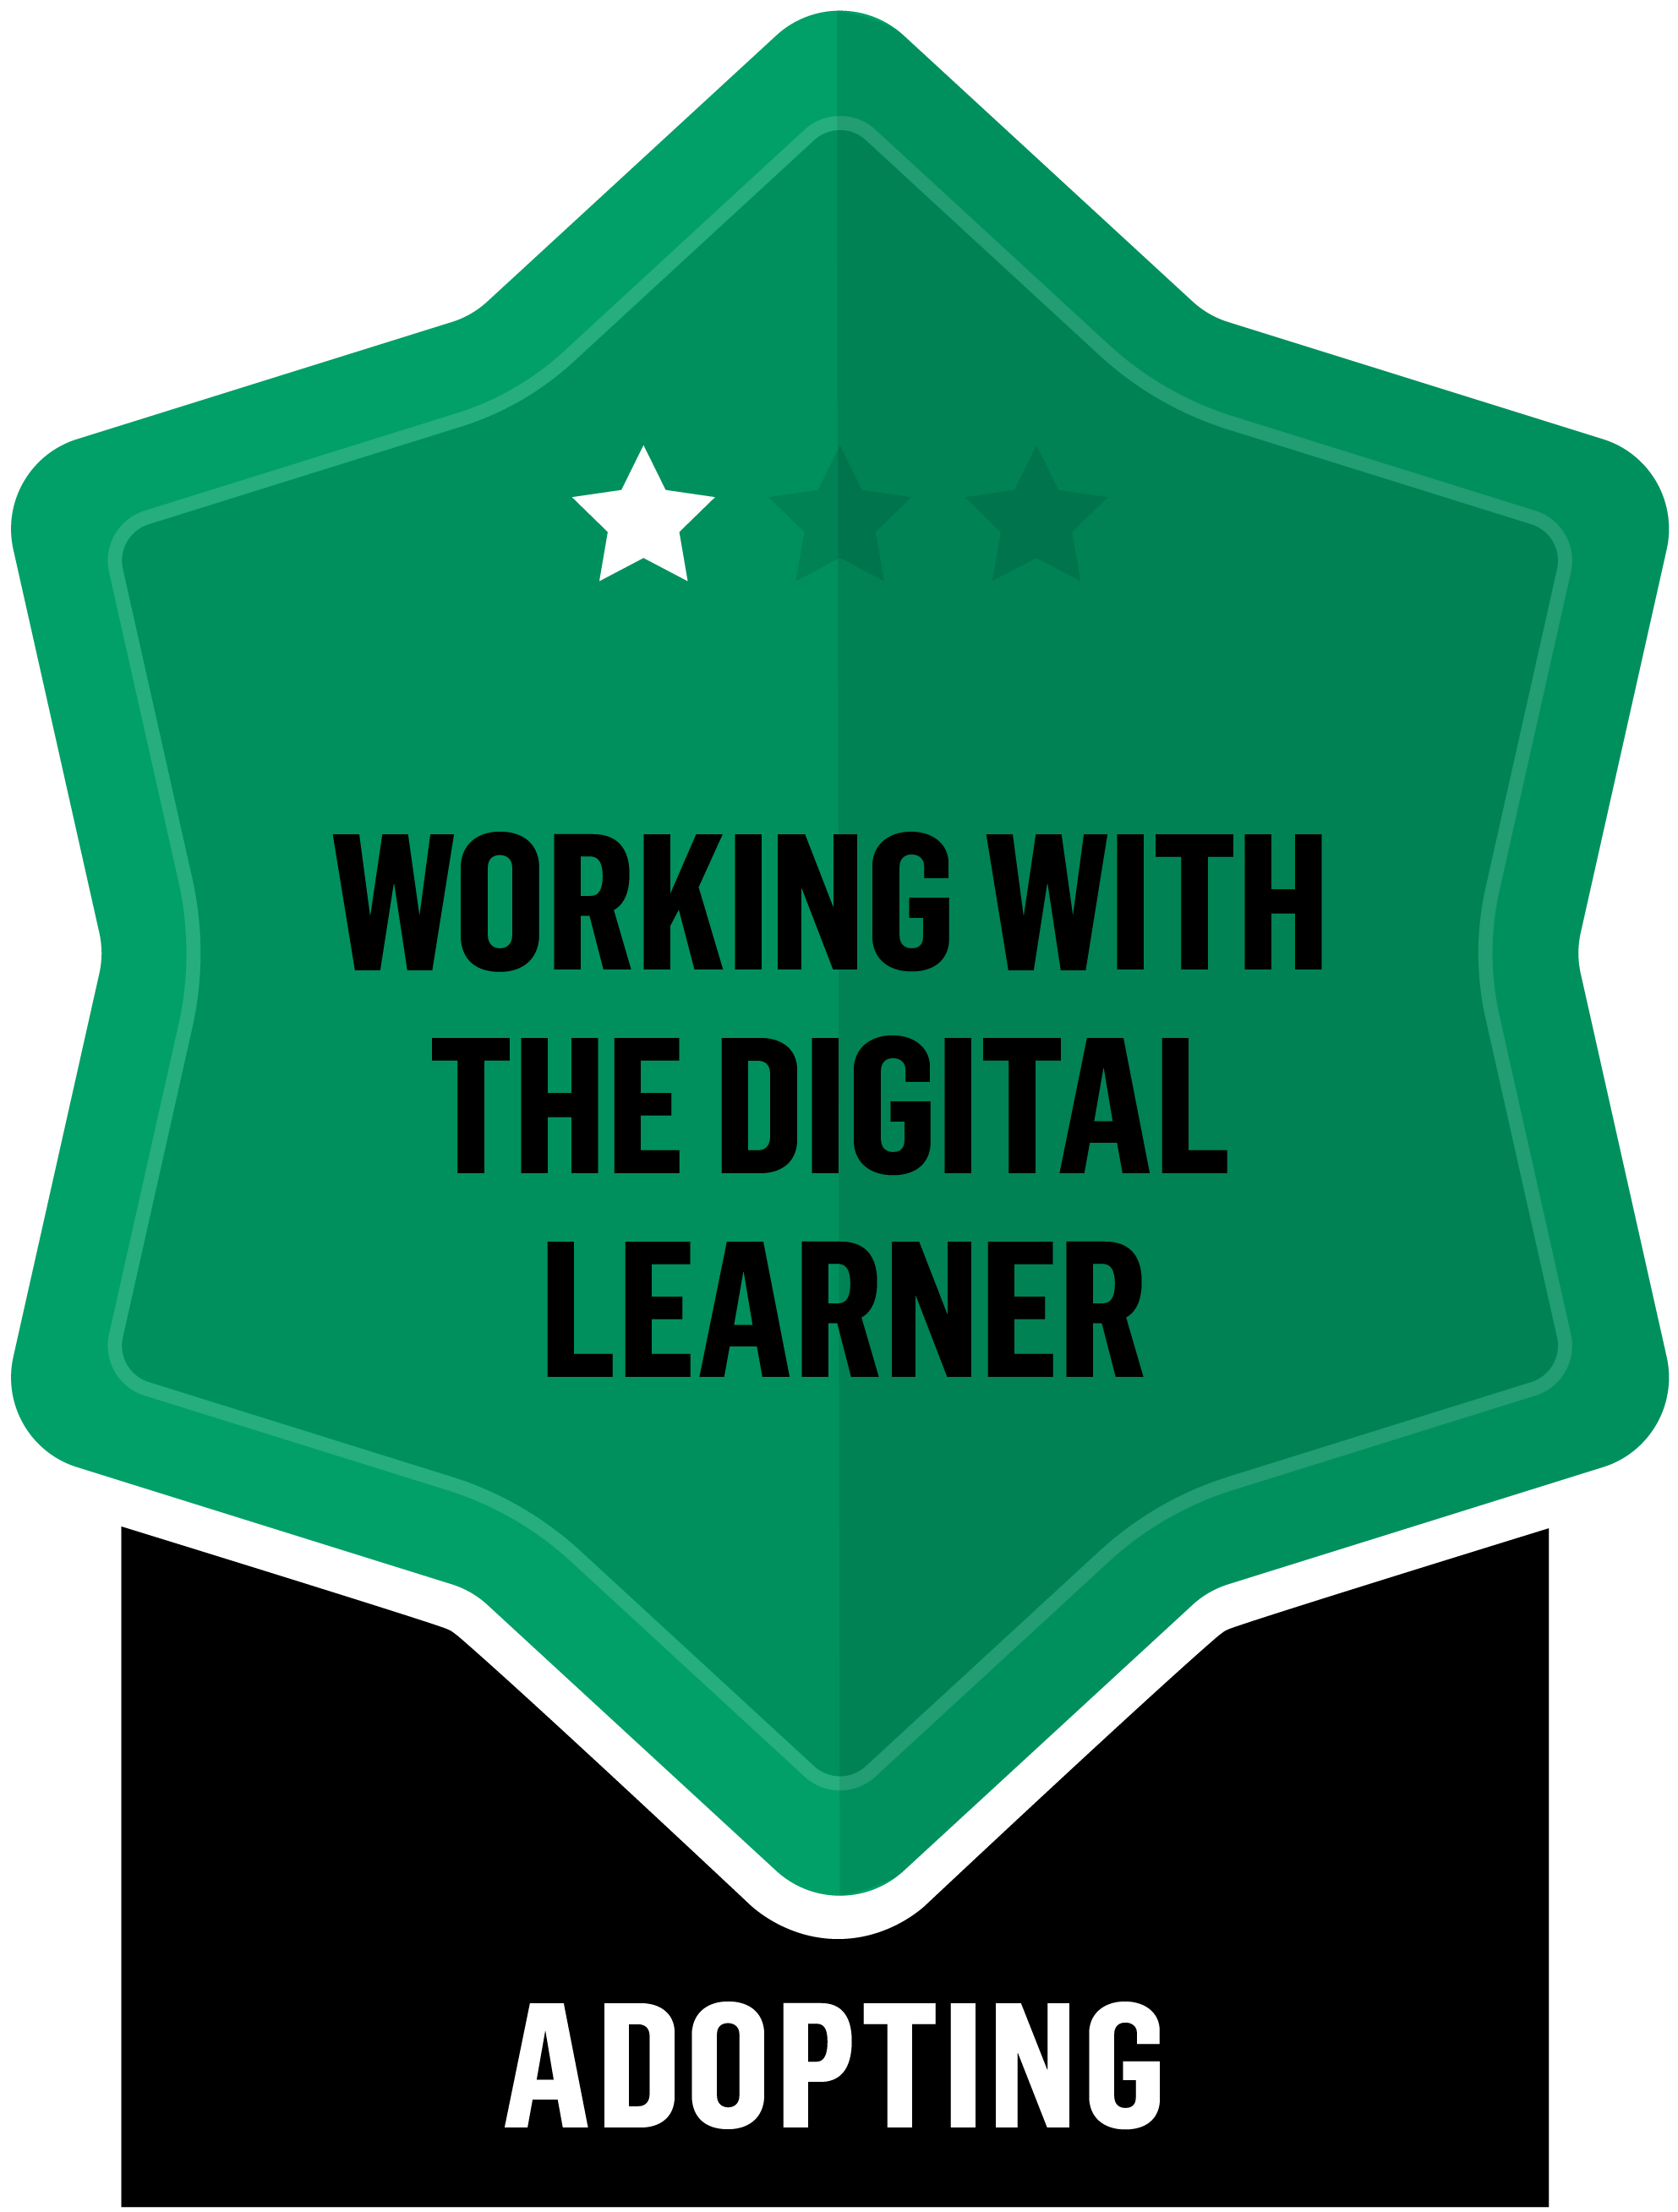 Badge for Working with the Digital Learner - Adopting